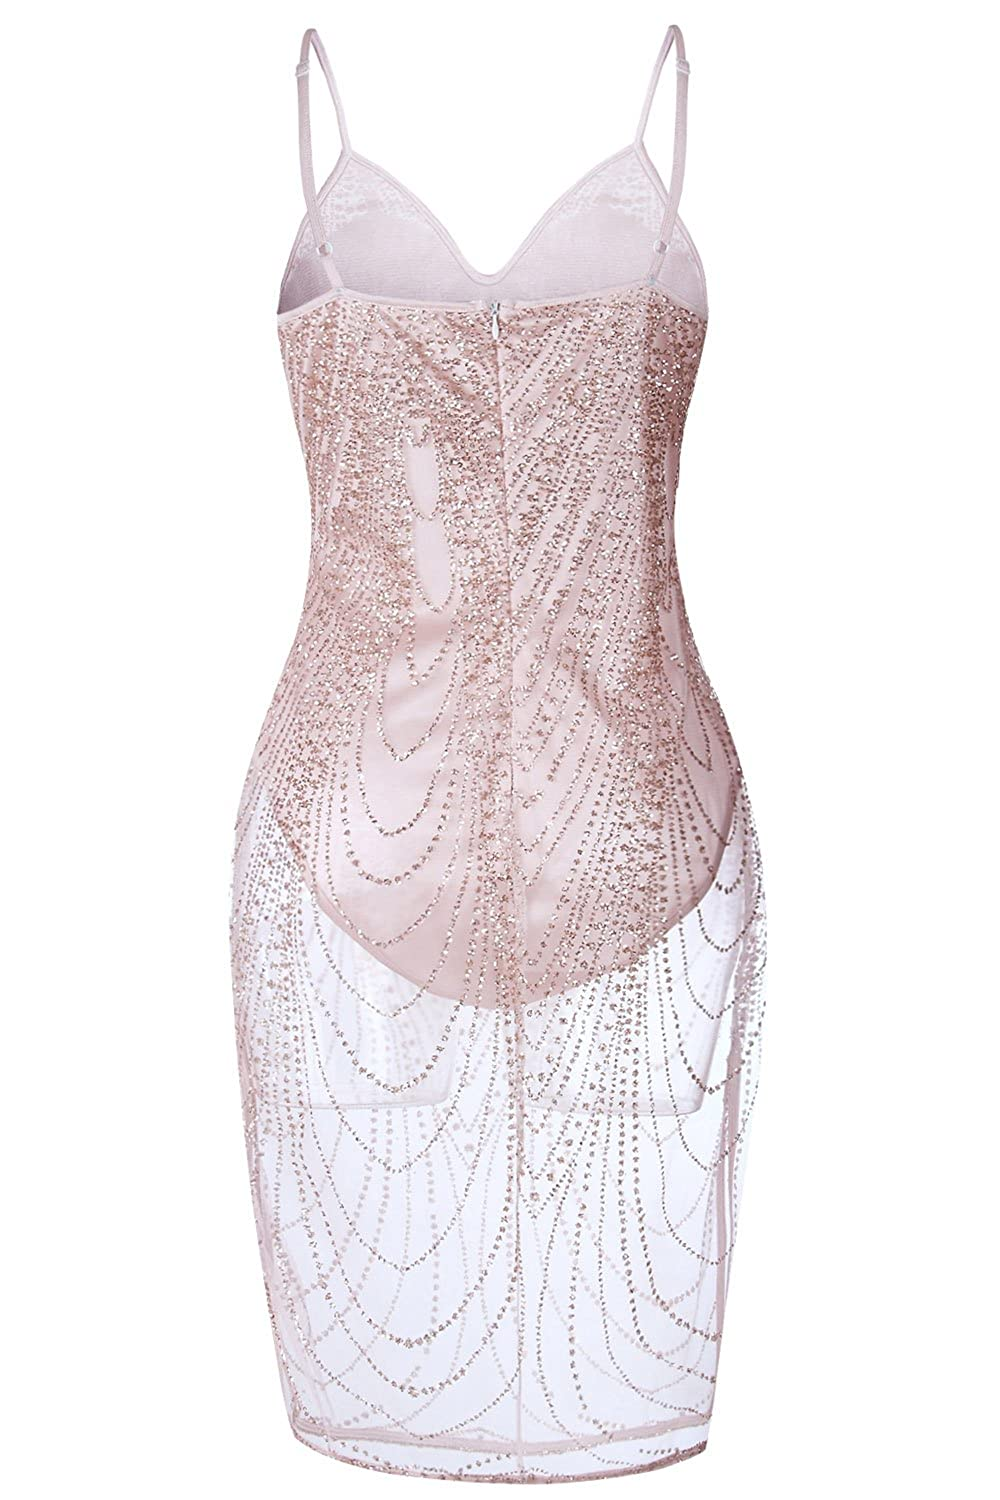 Suvotimo Women Spaghetti Straps Sheer Sequins Clubwear Party Bodycon Dress